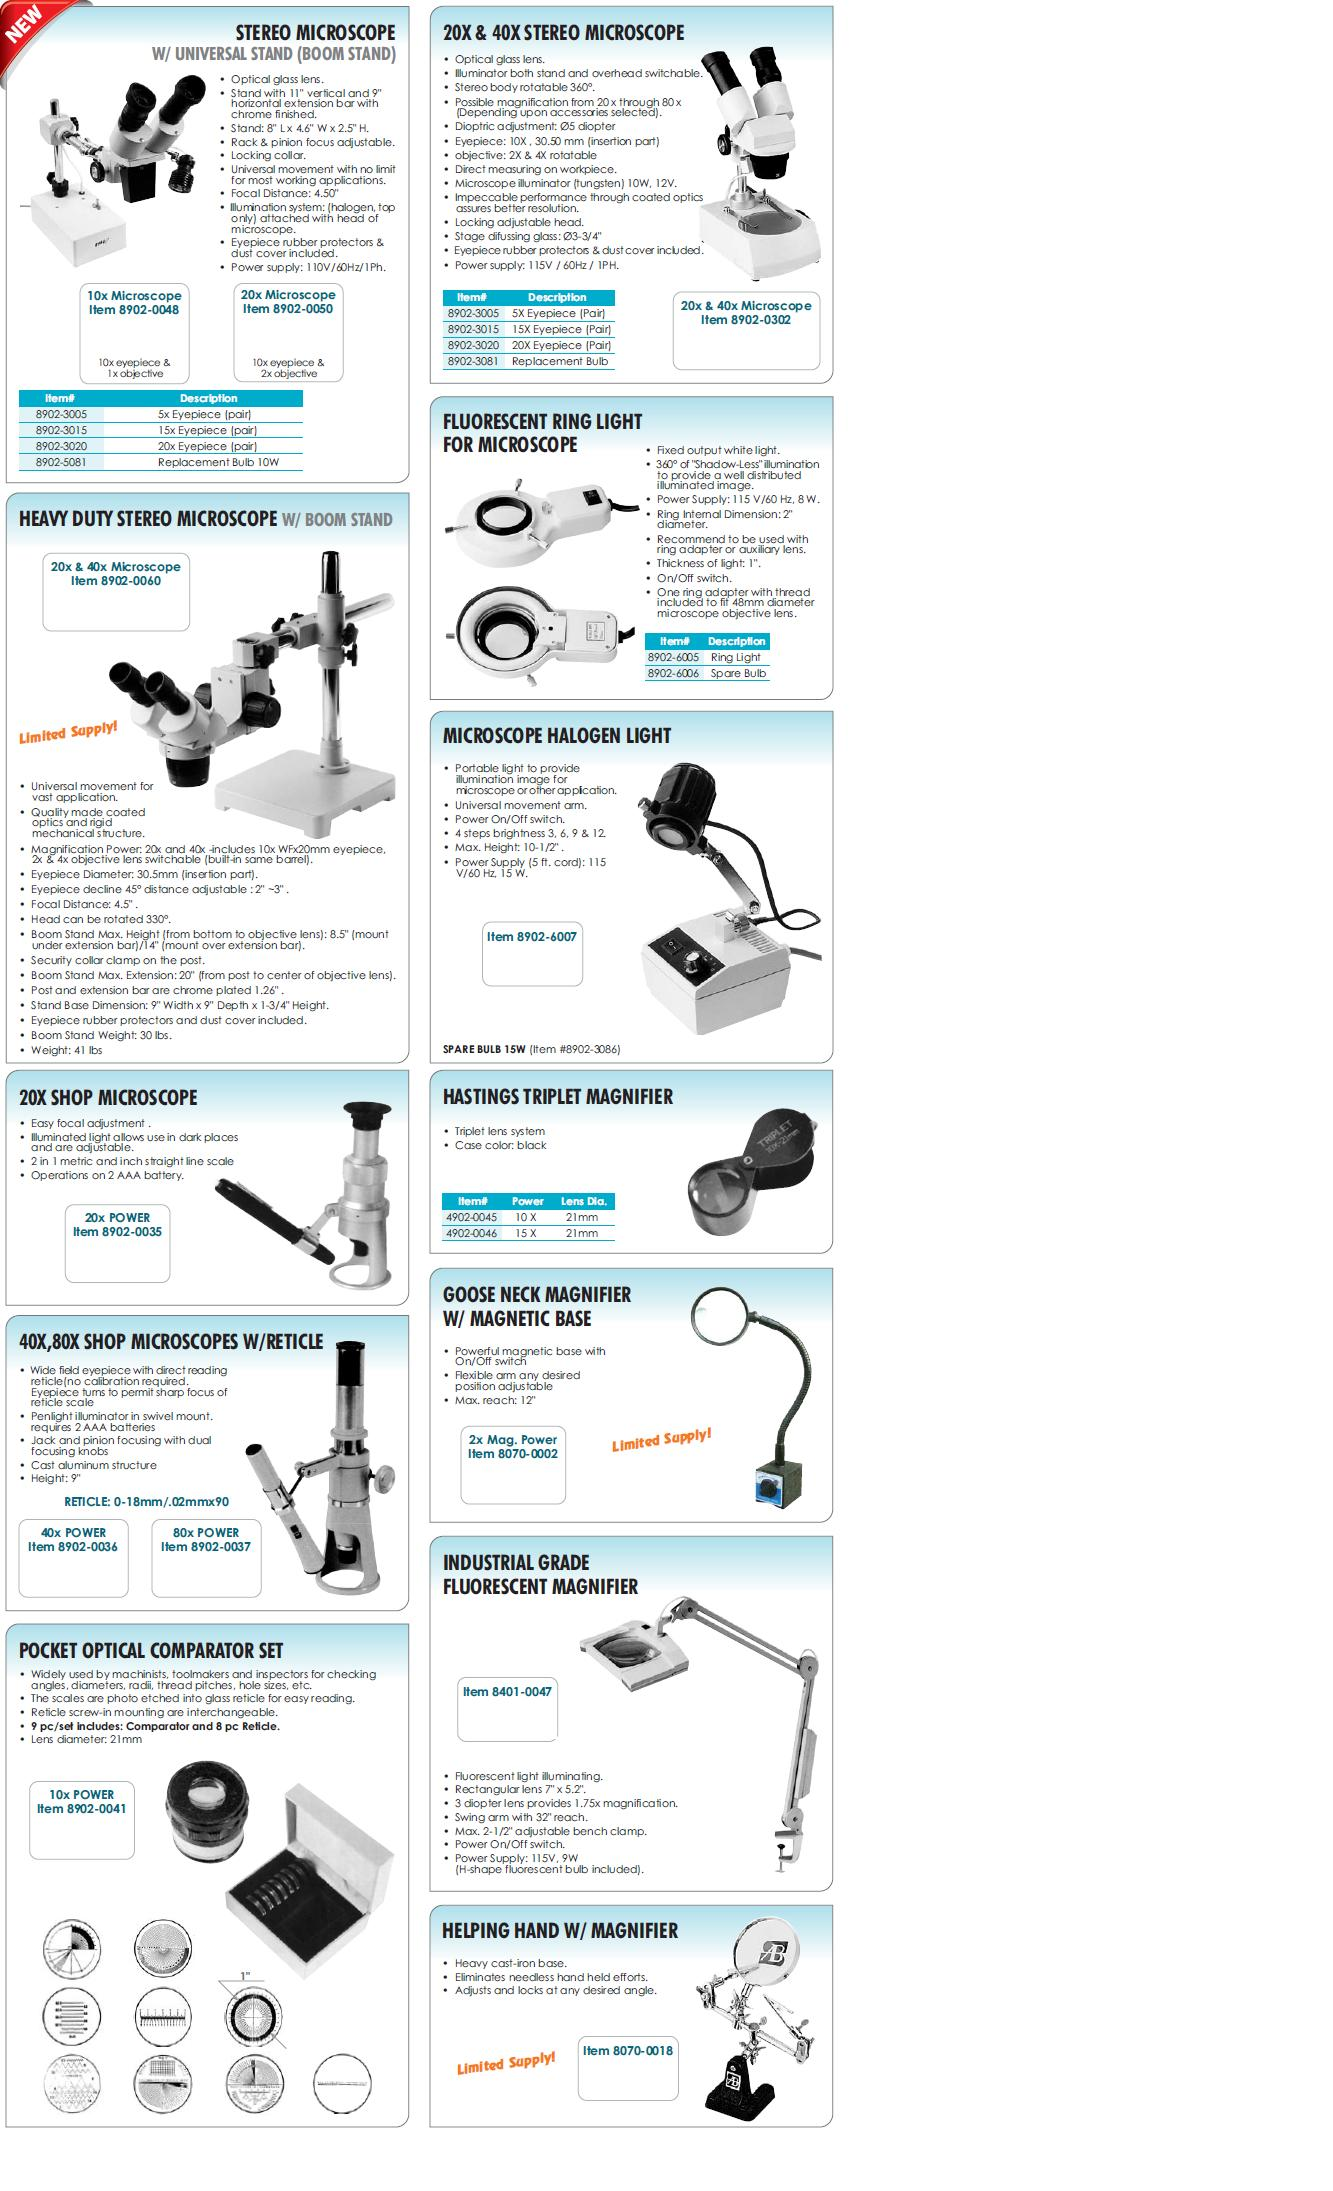 Microscopes, Magnifiers, & Comparator Sets